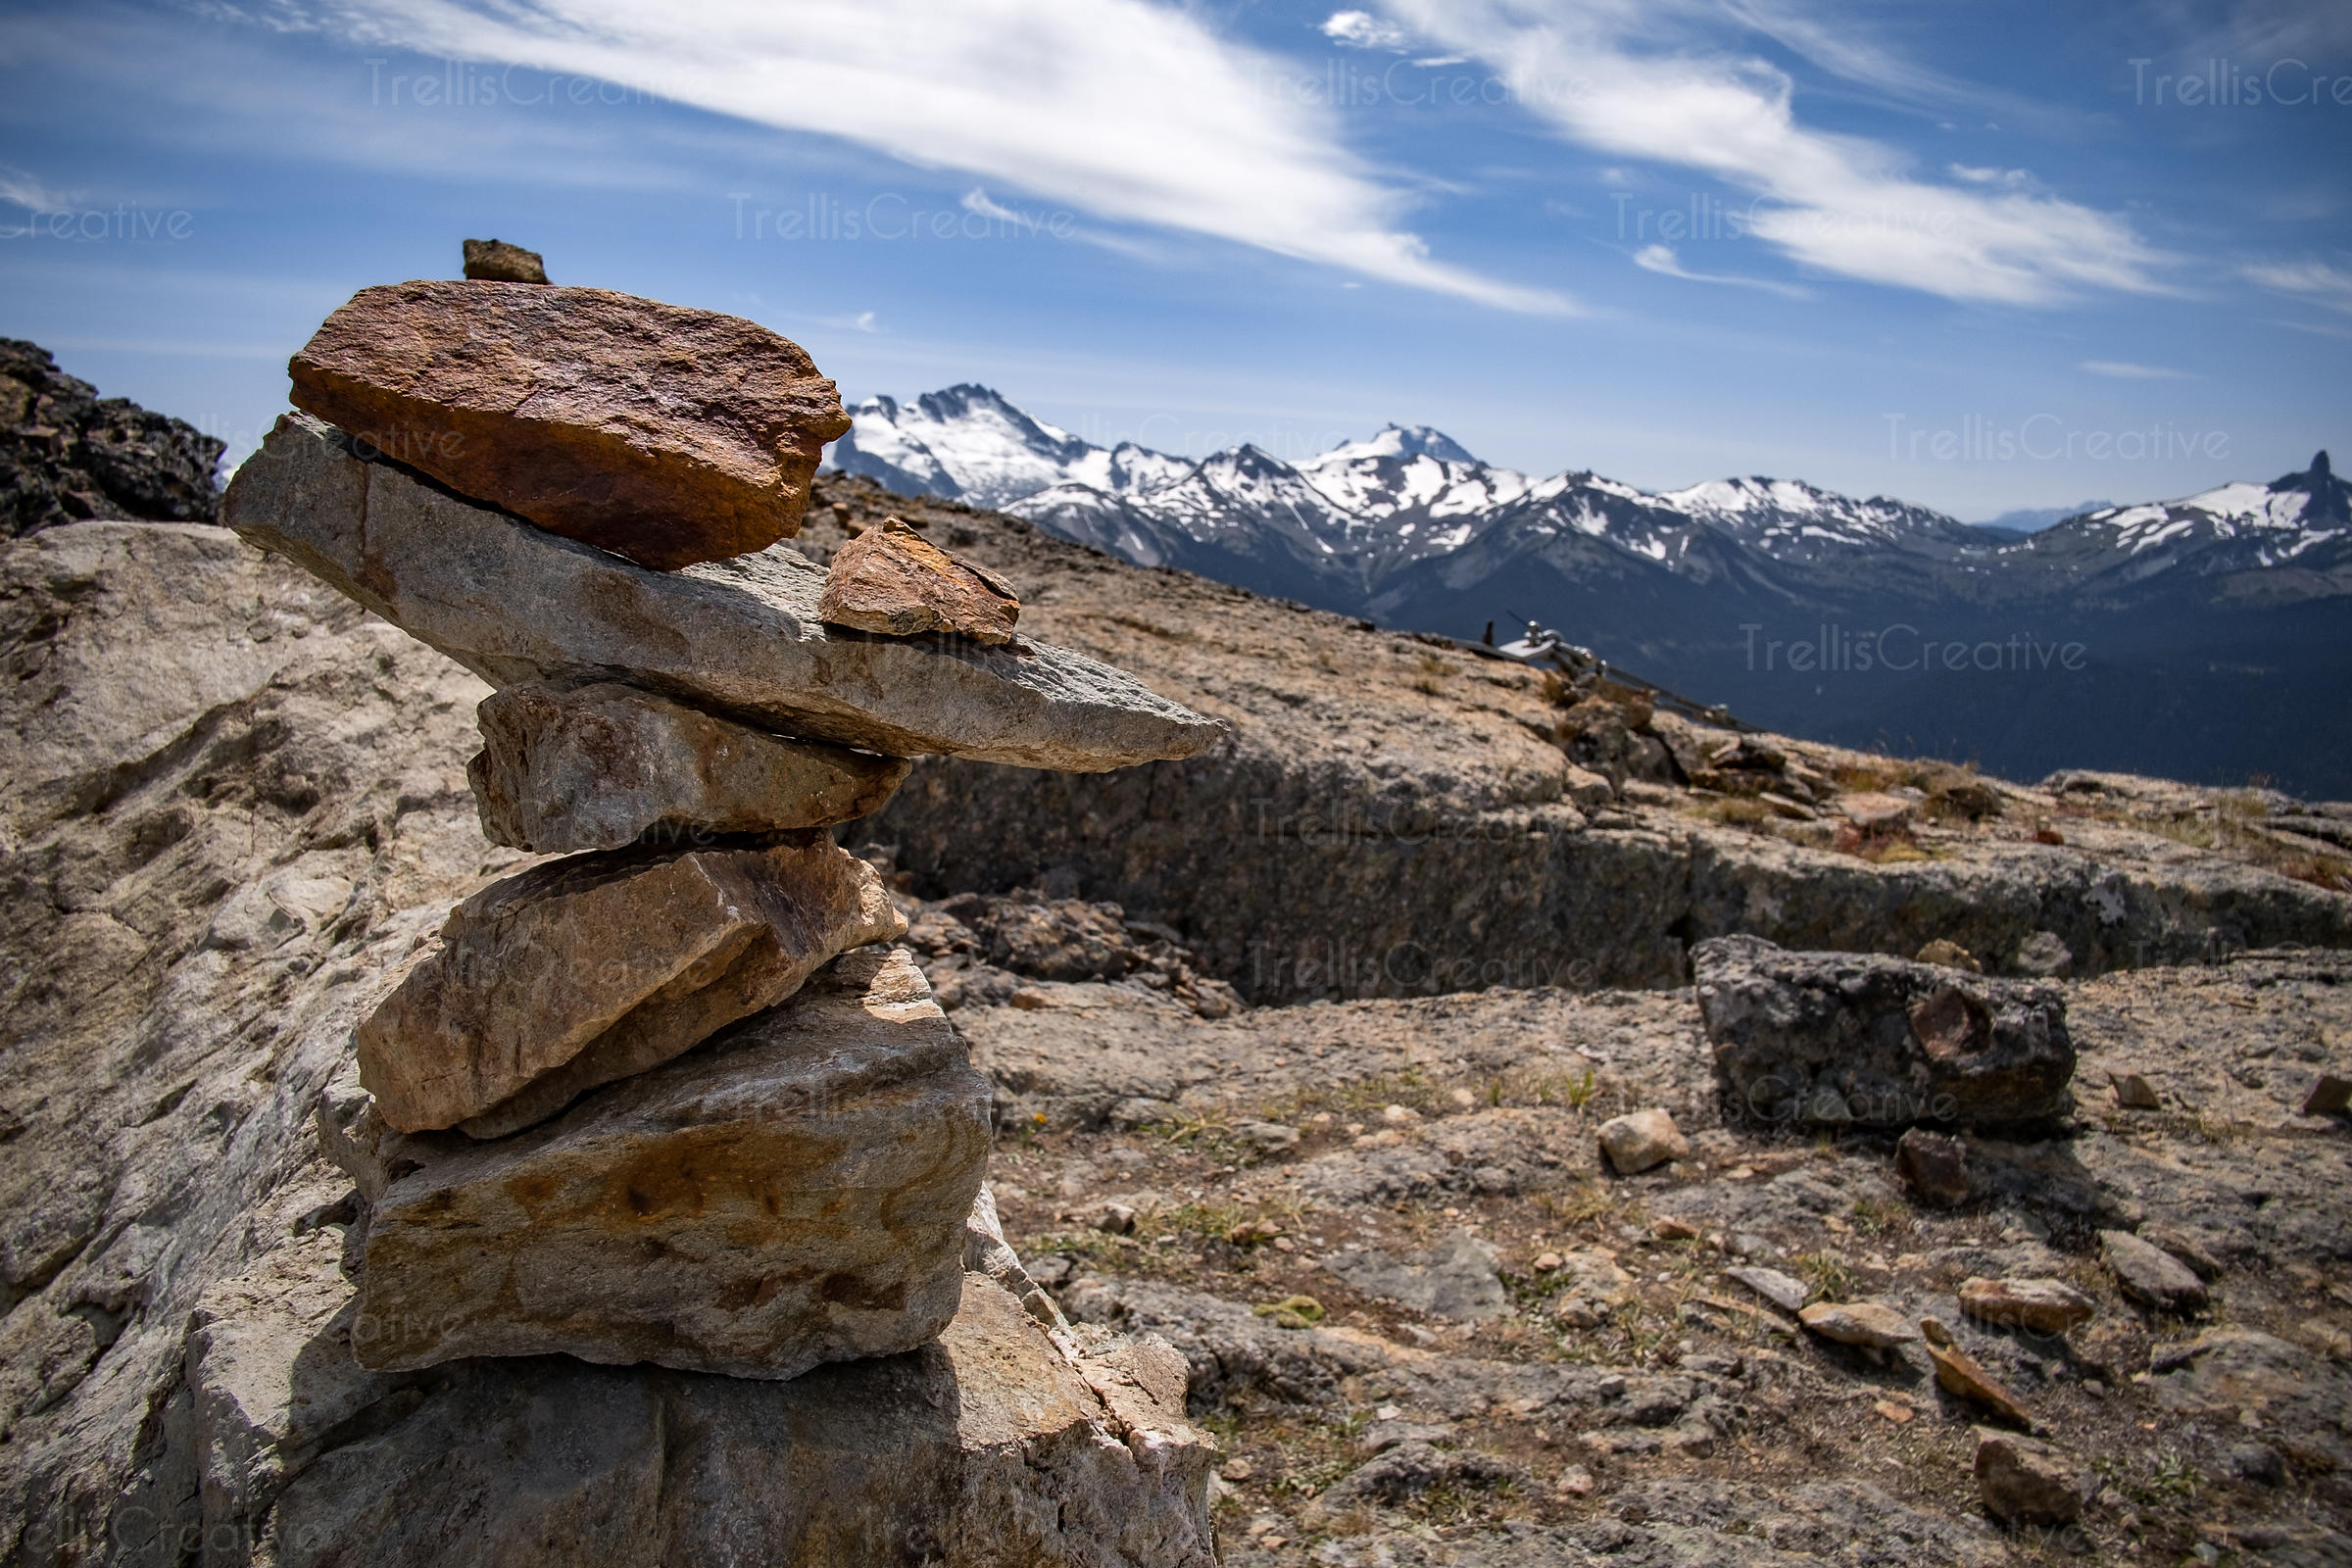 Stone cairn on top of a mountain peak, Blackcomb Mountain, Whistler, Canada.